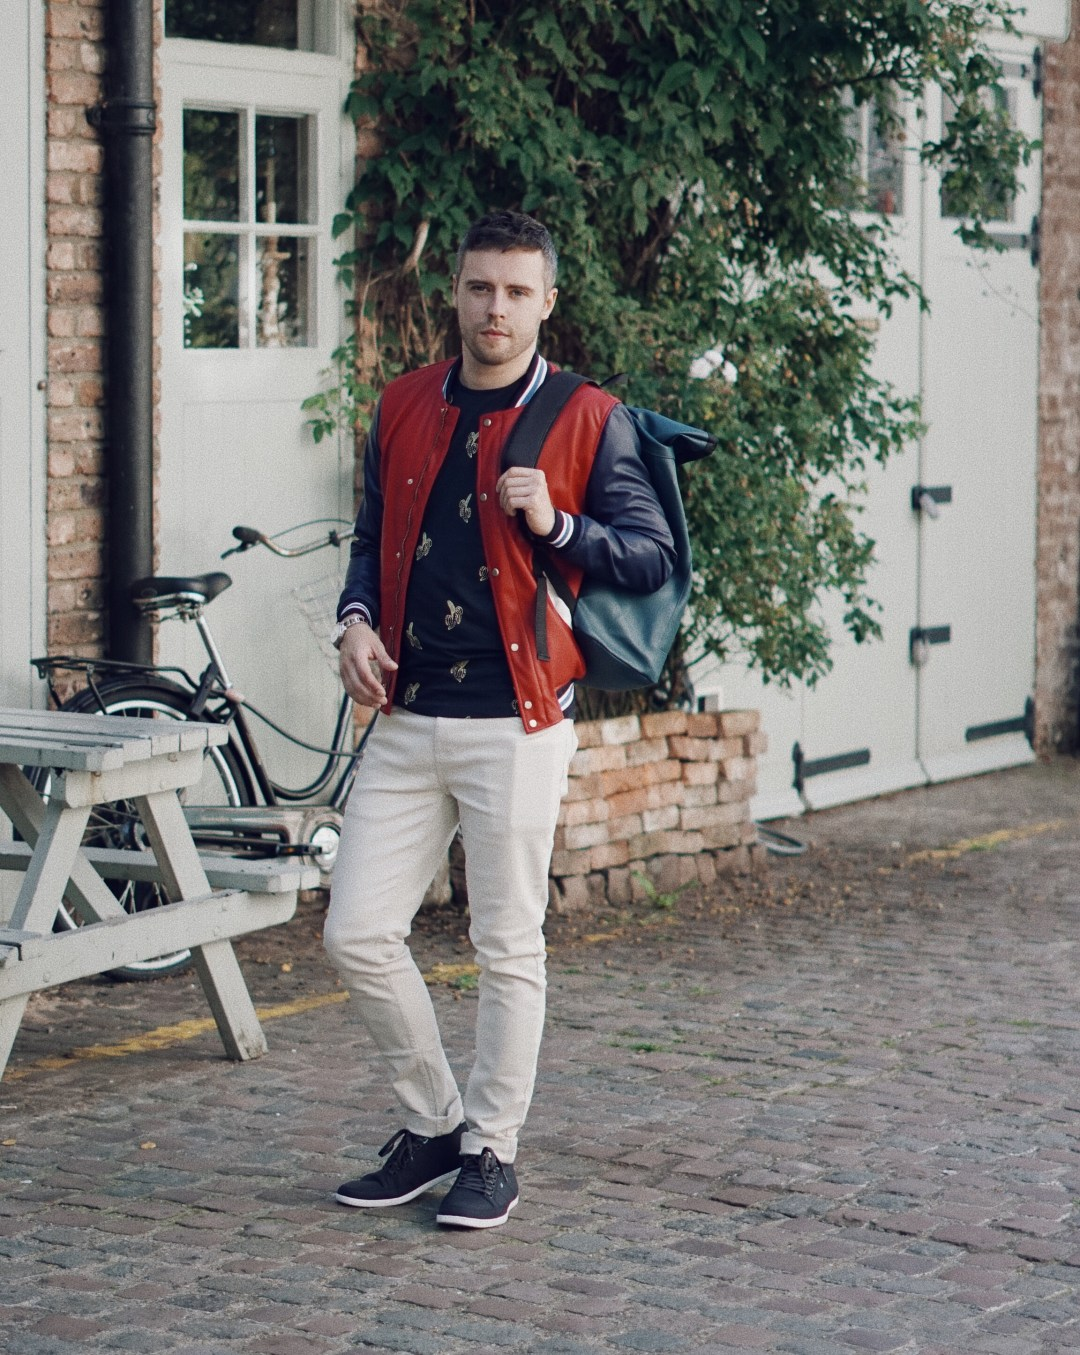 St Lukes Mews in Notting Hill. Wearing KRONABY Sweden Sekel Watch, Zara College Bomber Jacket and Printed Top in Navy Blue, Primark Stone Twill Stretch Skinny Trouser and Boxfresh Shoes. Snapped by Ed Lemon from The Discerning Man. Blog by Skirmantas Petraitis